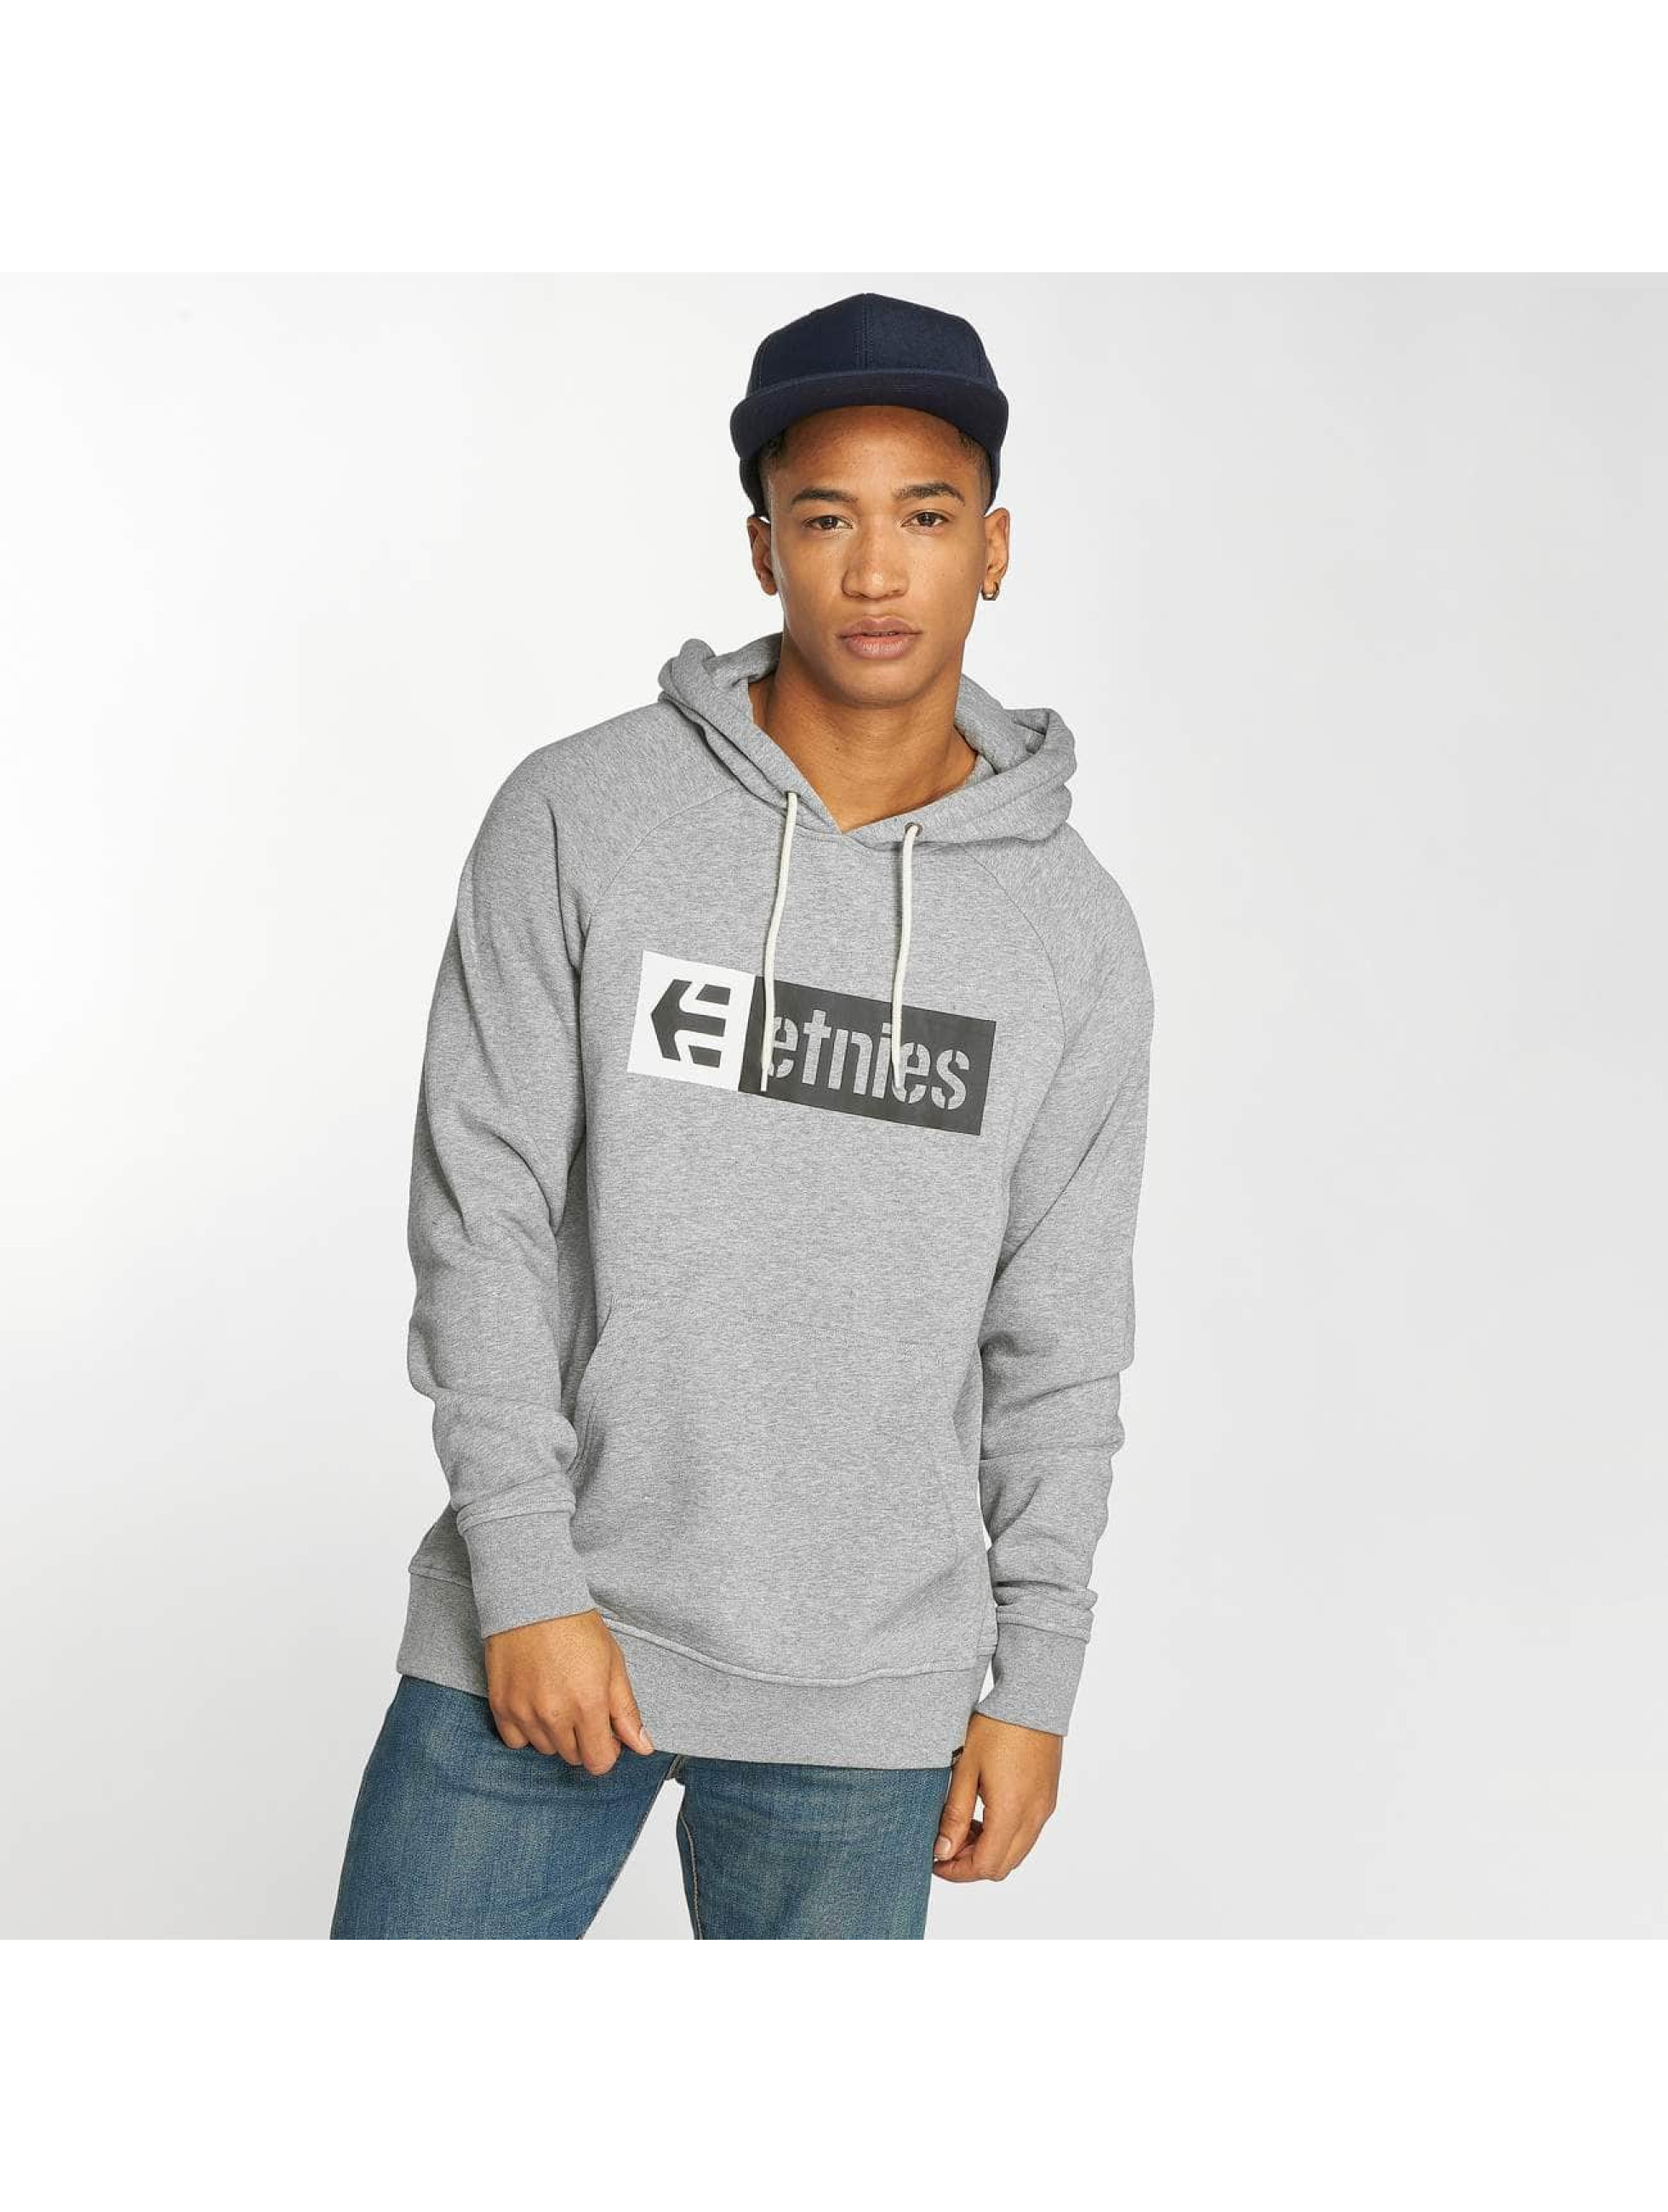 Etnies Sweat capuche New Box gris